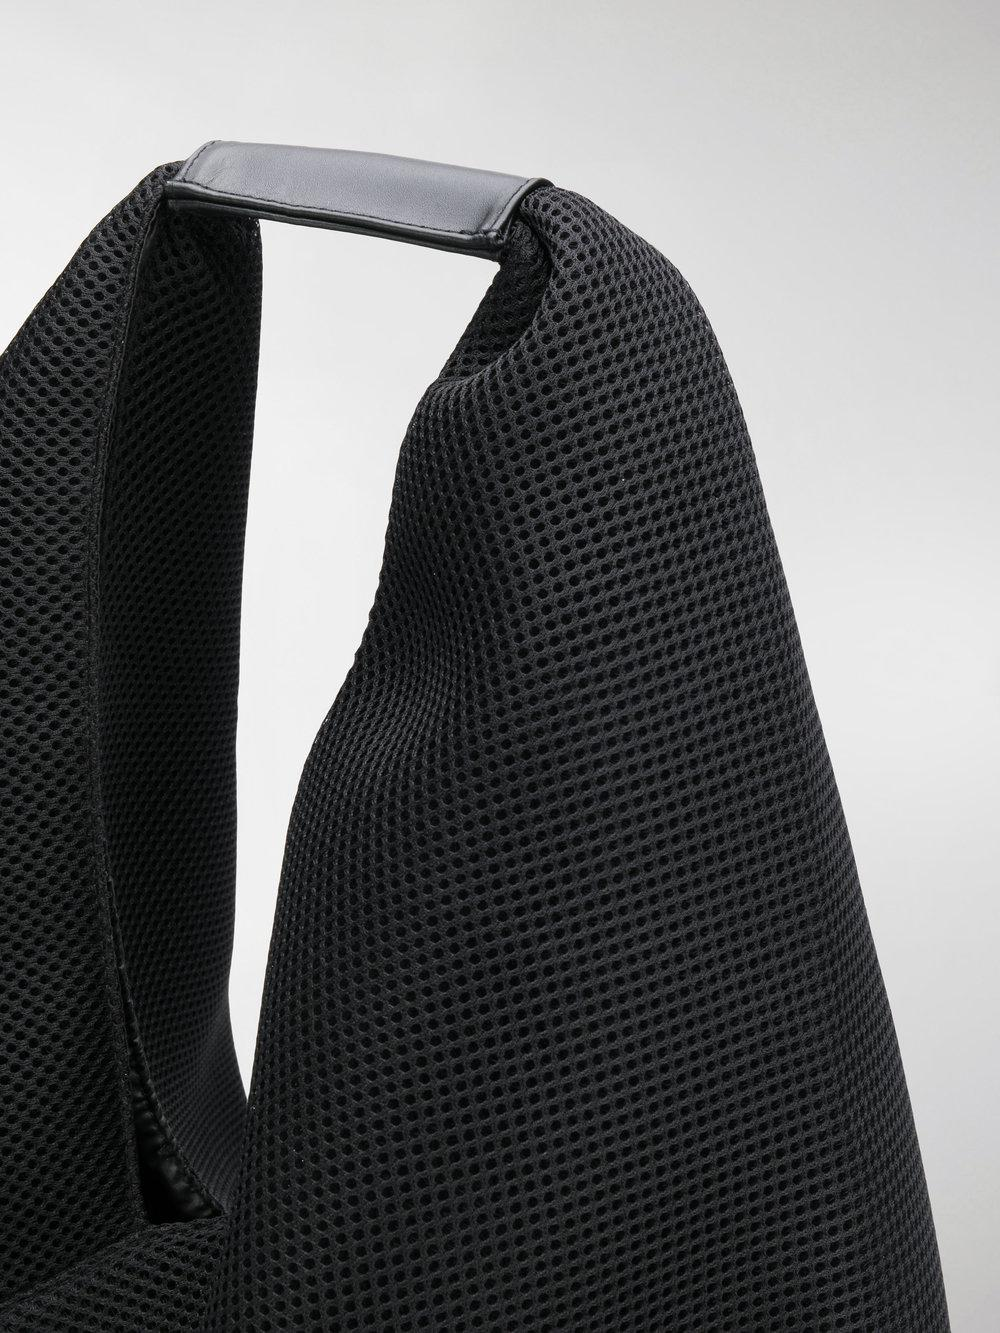 MM6 by Maison Martin Margiela Synthetic Japanese Tote Bag in Black